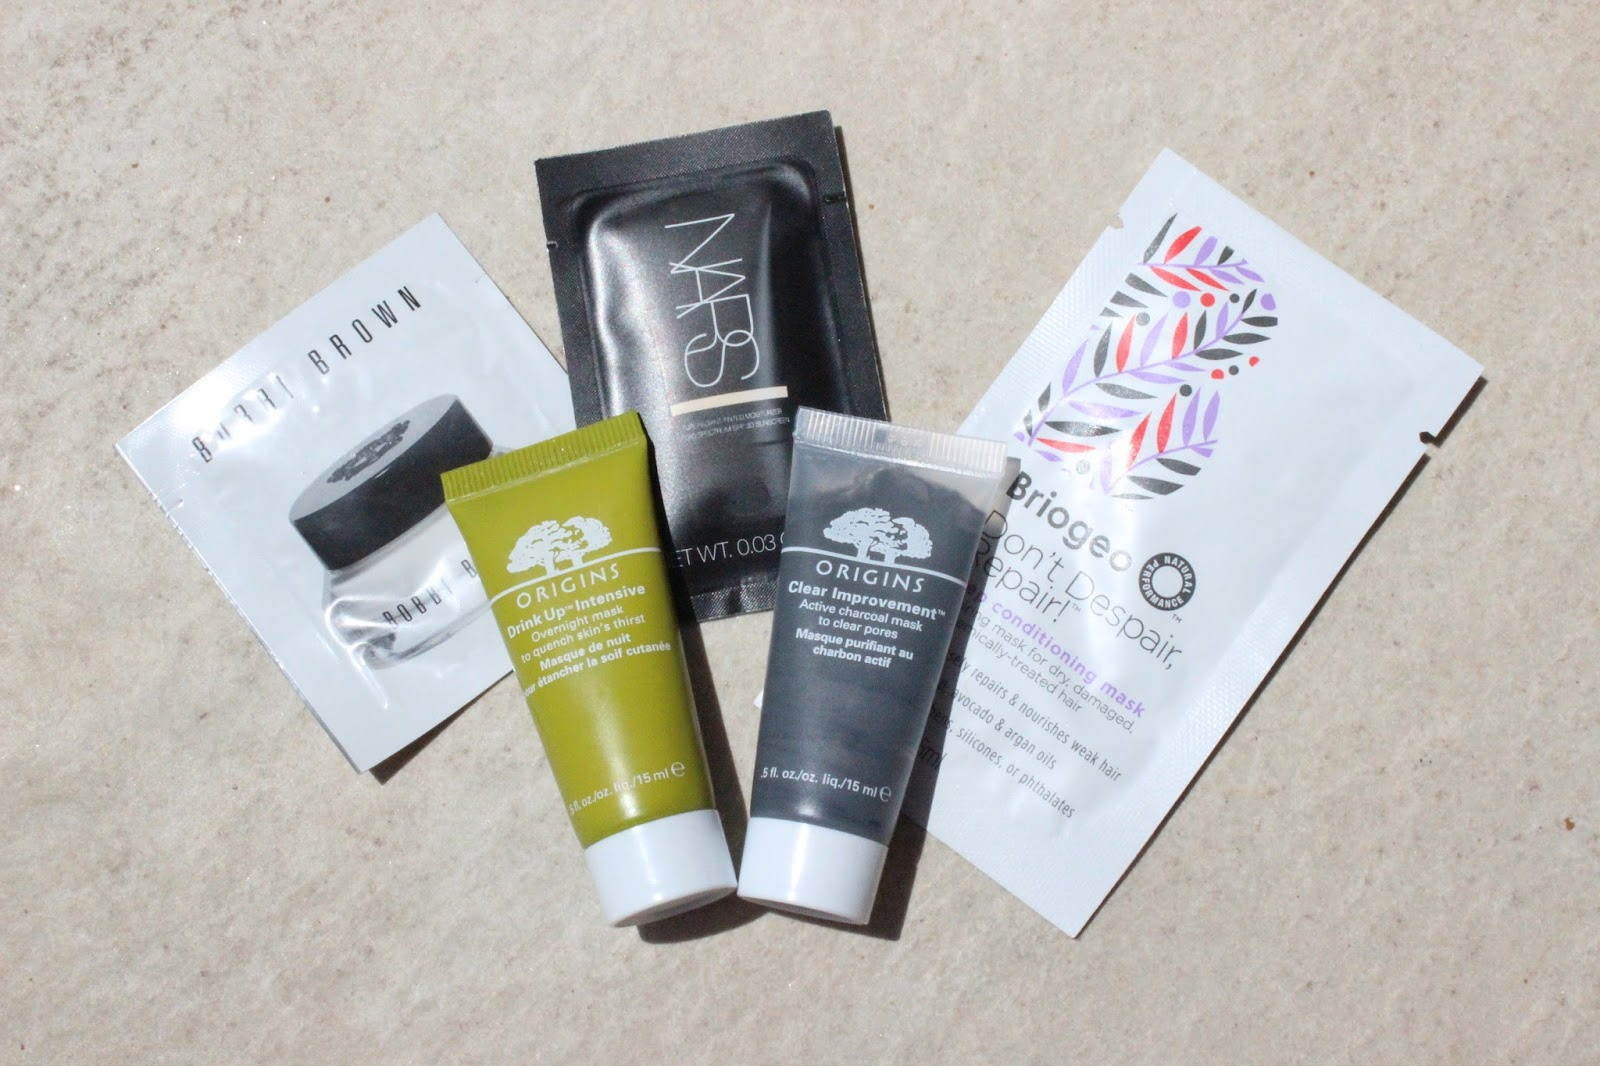 Travel Beauty, save samples